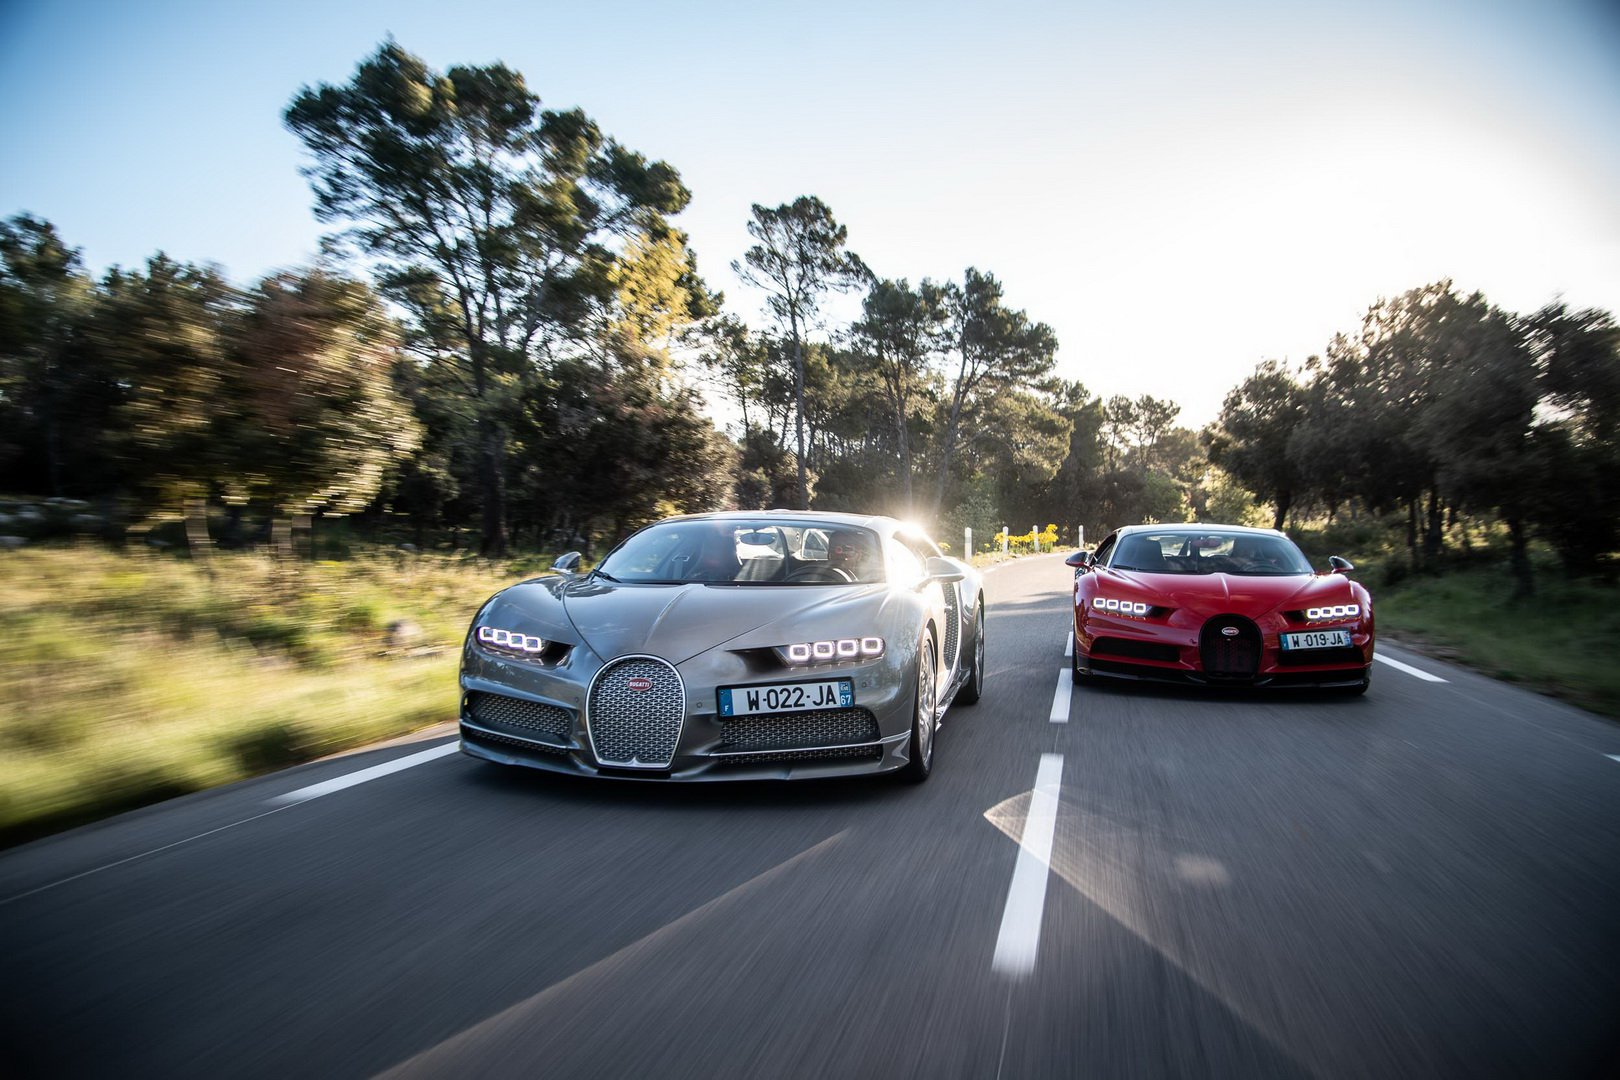 Bugatti-Chiron-and-Chiron-Sport-at-Paul-Ricard-Circuit-8